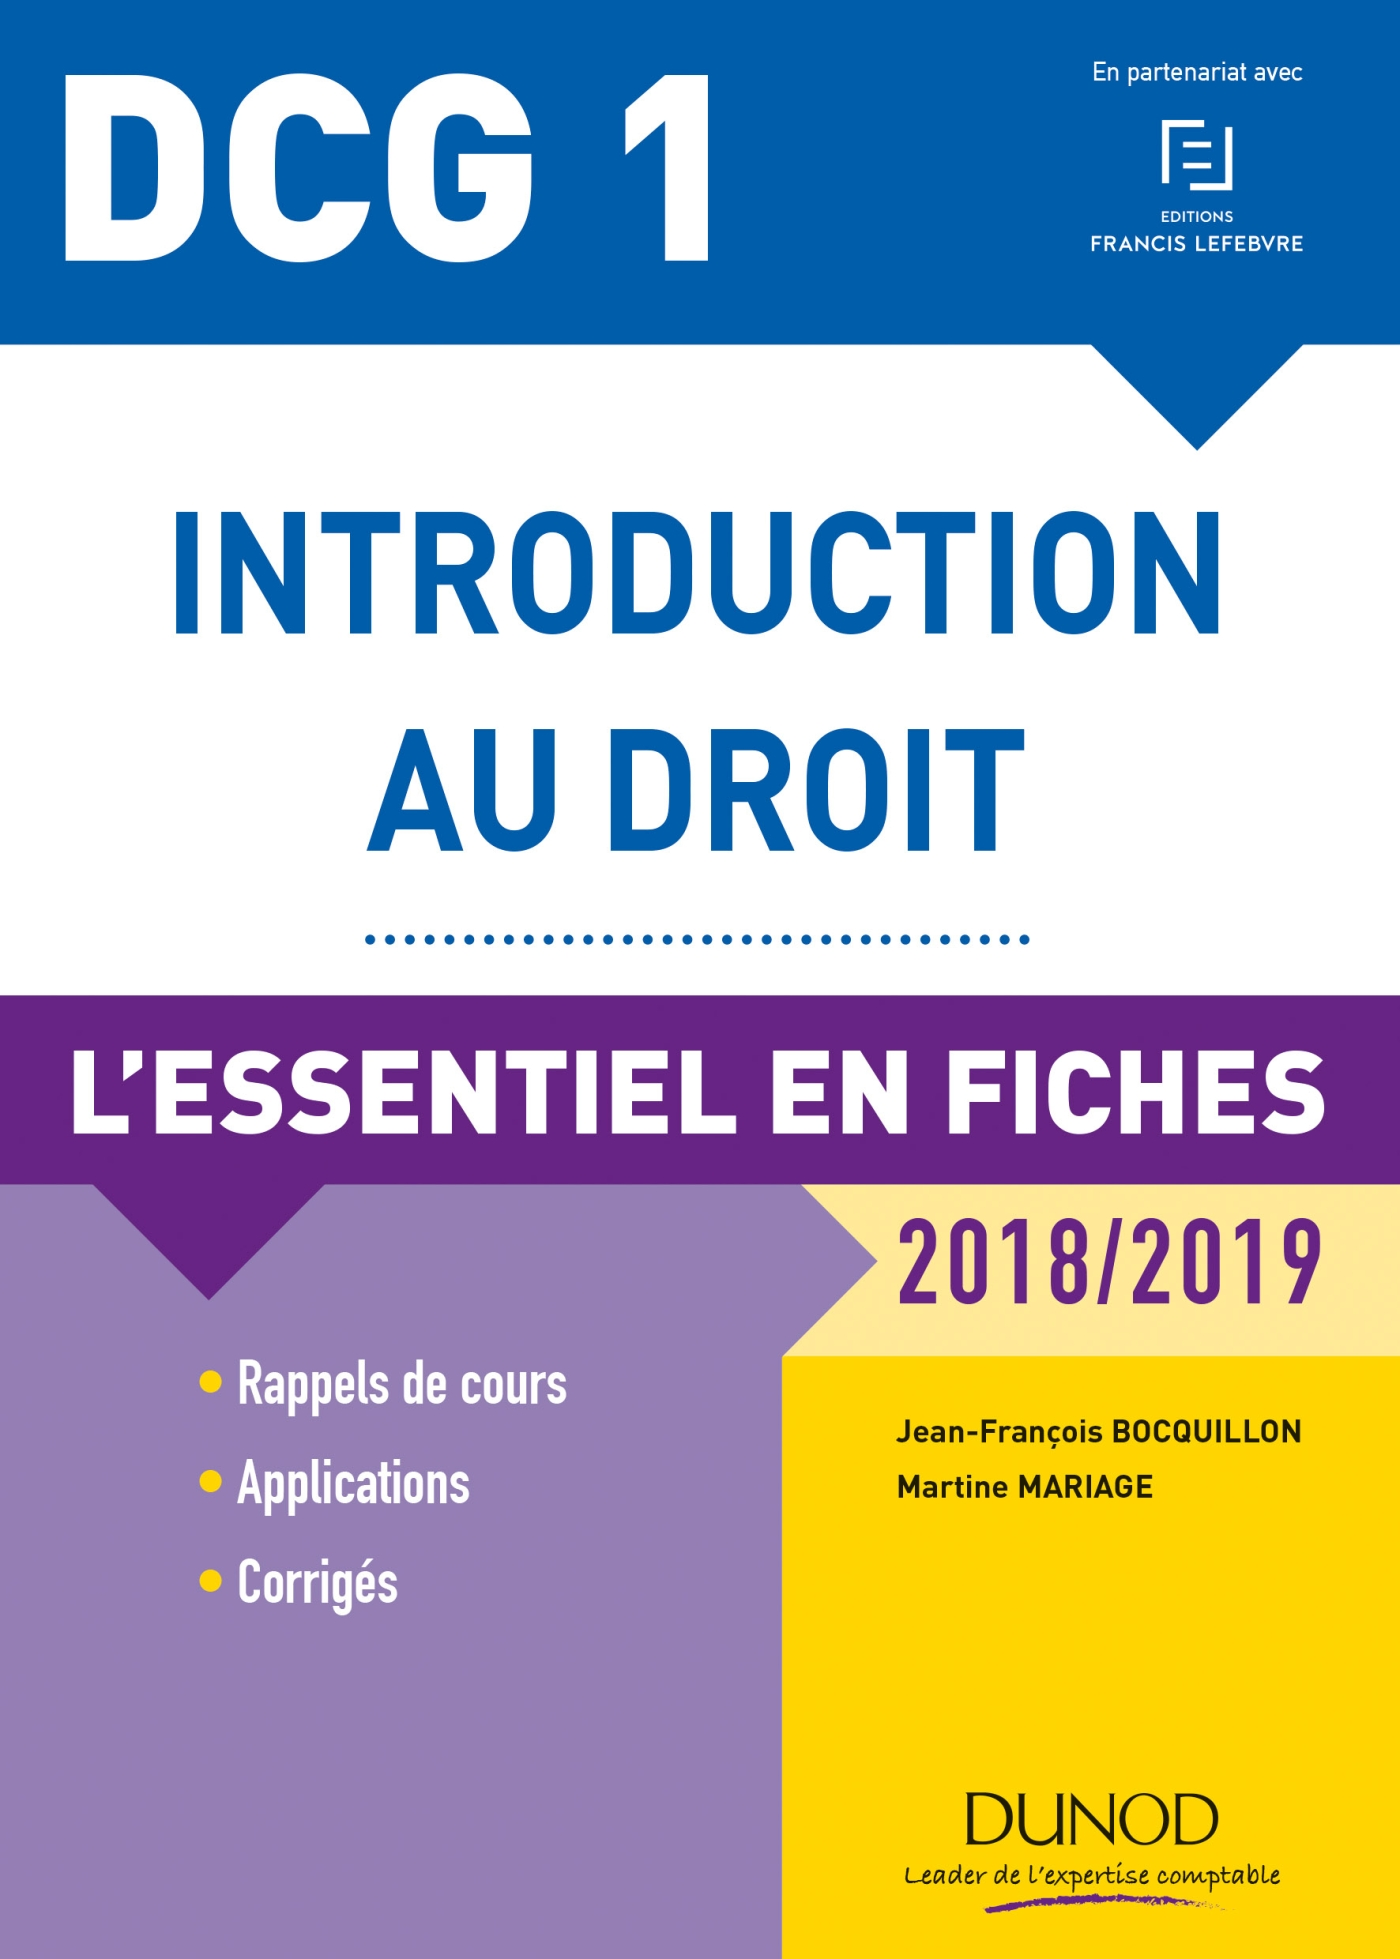 DCG 1 - Introduction au droit - 2018/2019 - 9e éd.